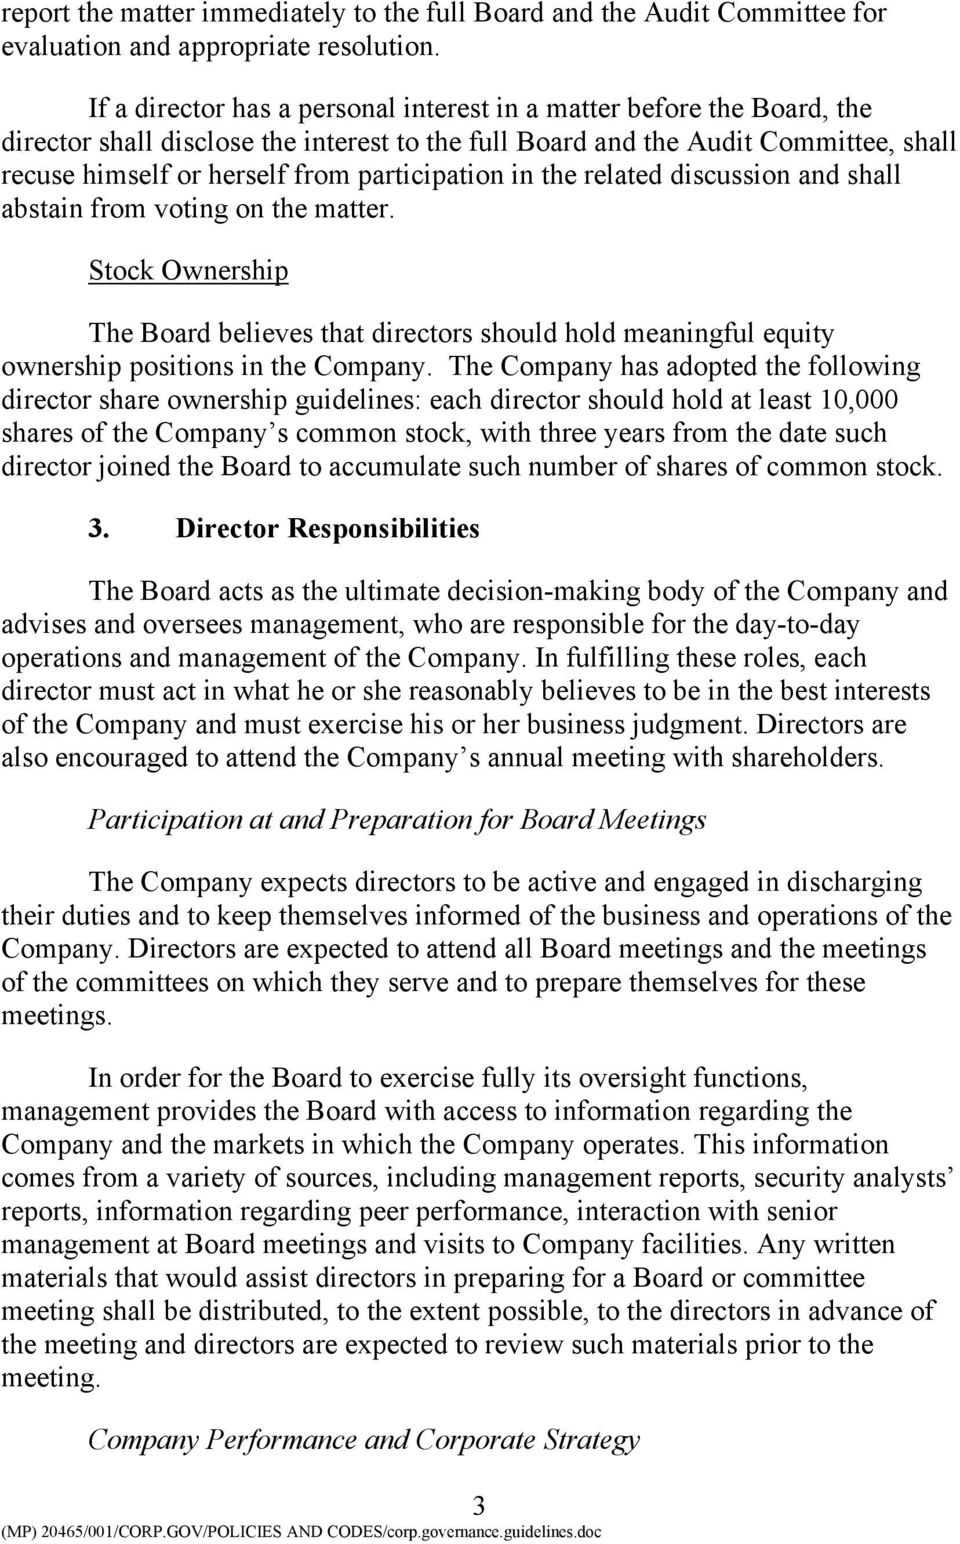 participation in the related discussion and shall abstain from voting on the matter. Stock Ownership The Board believes that directors should hold meaningful equity ownership positions in the Company.